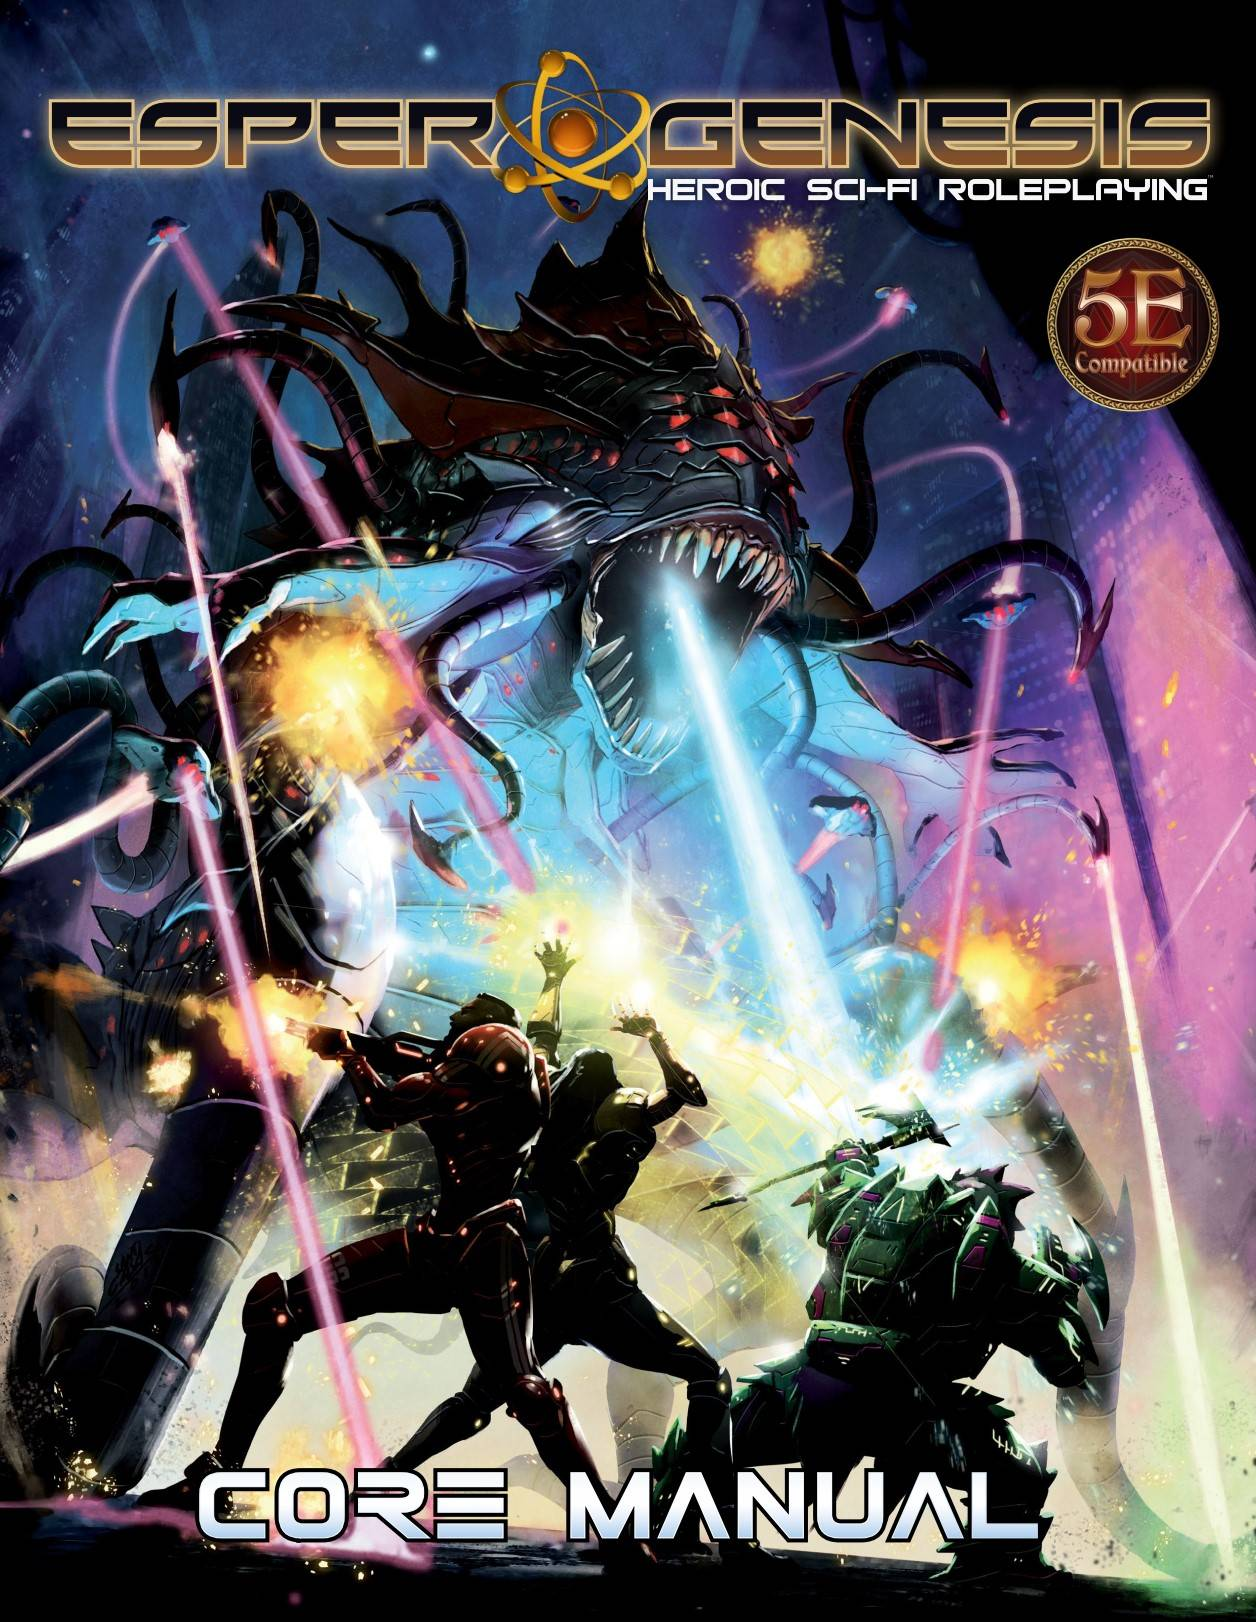 A tentacled alien horror with multiple eyes fires energy blasts at a group of tech armored explorers.